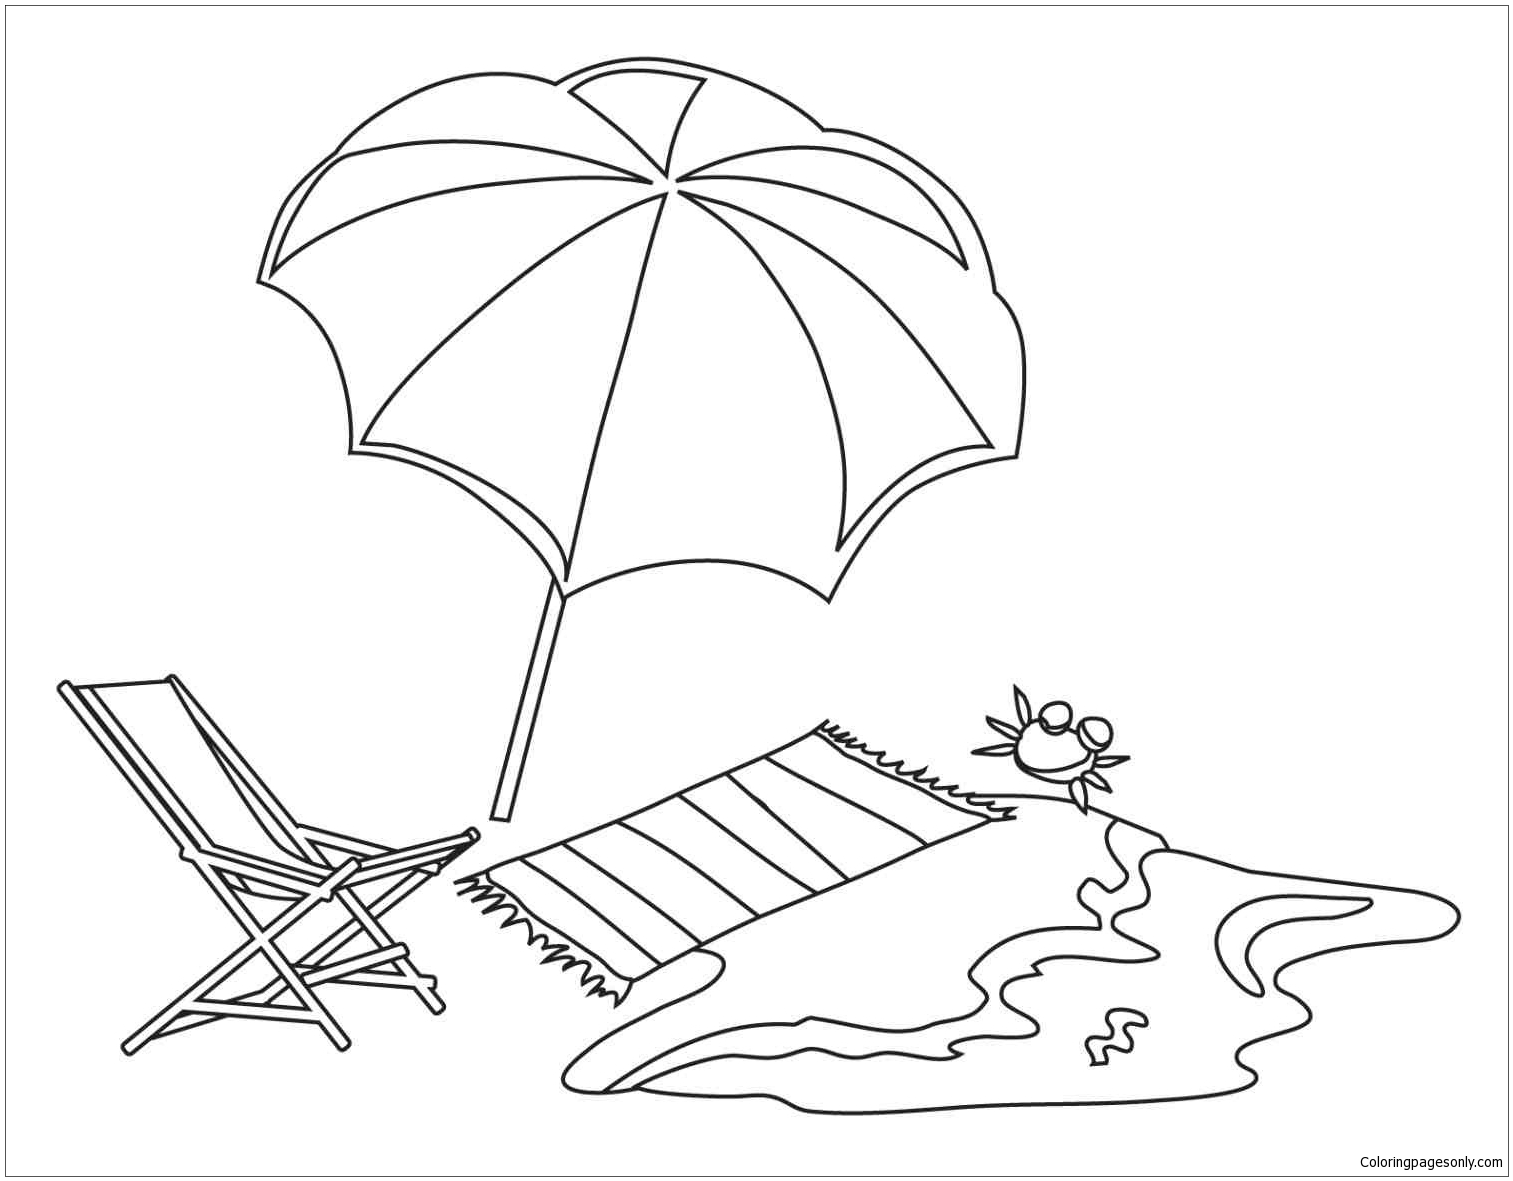 beach picture for coloring beach theme 1 coloring pages nature seasons coloring picture for beach coloring